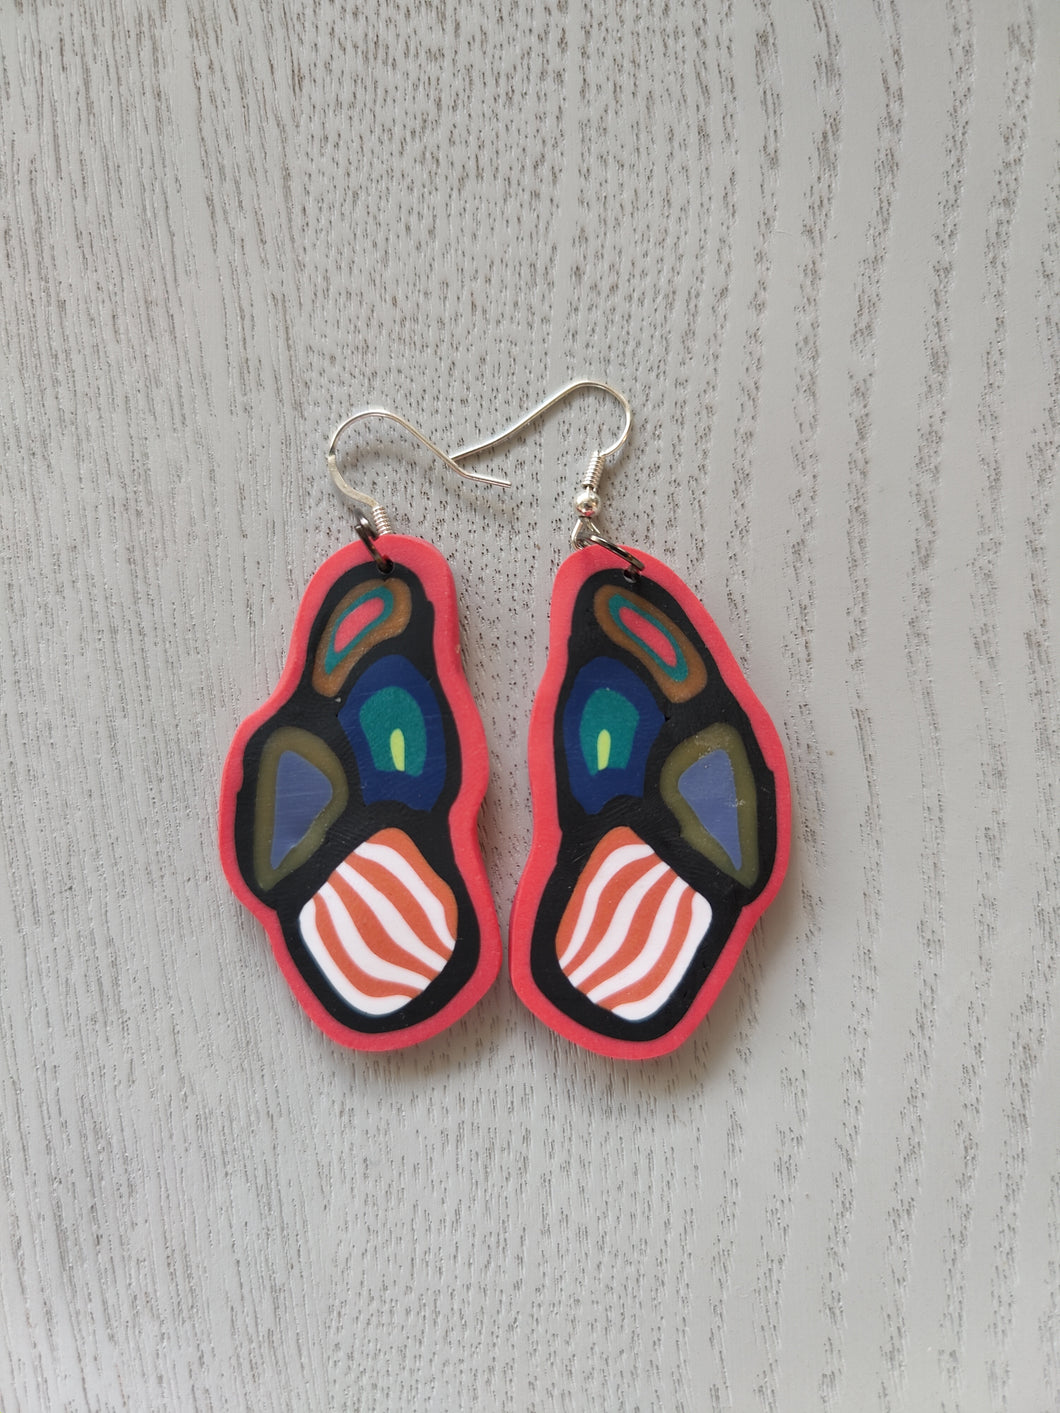 Contemporary Cane Parrot Earrings - Shazz Art